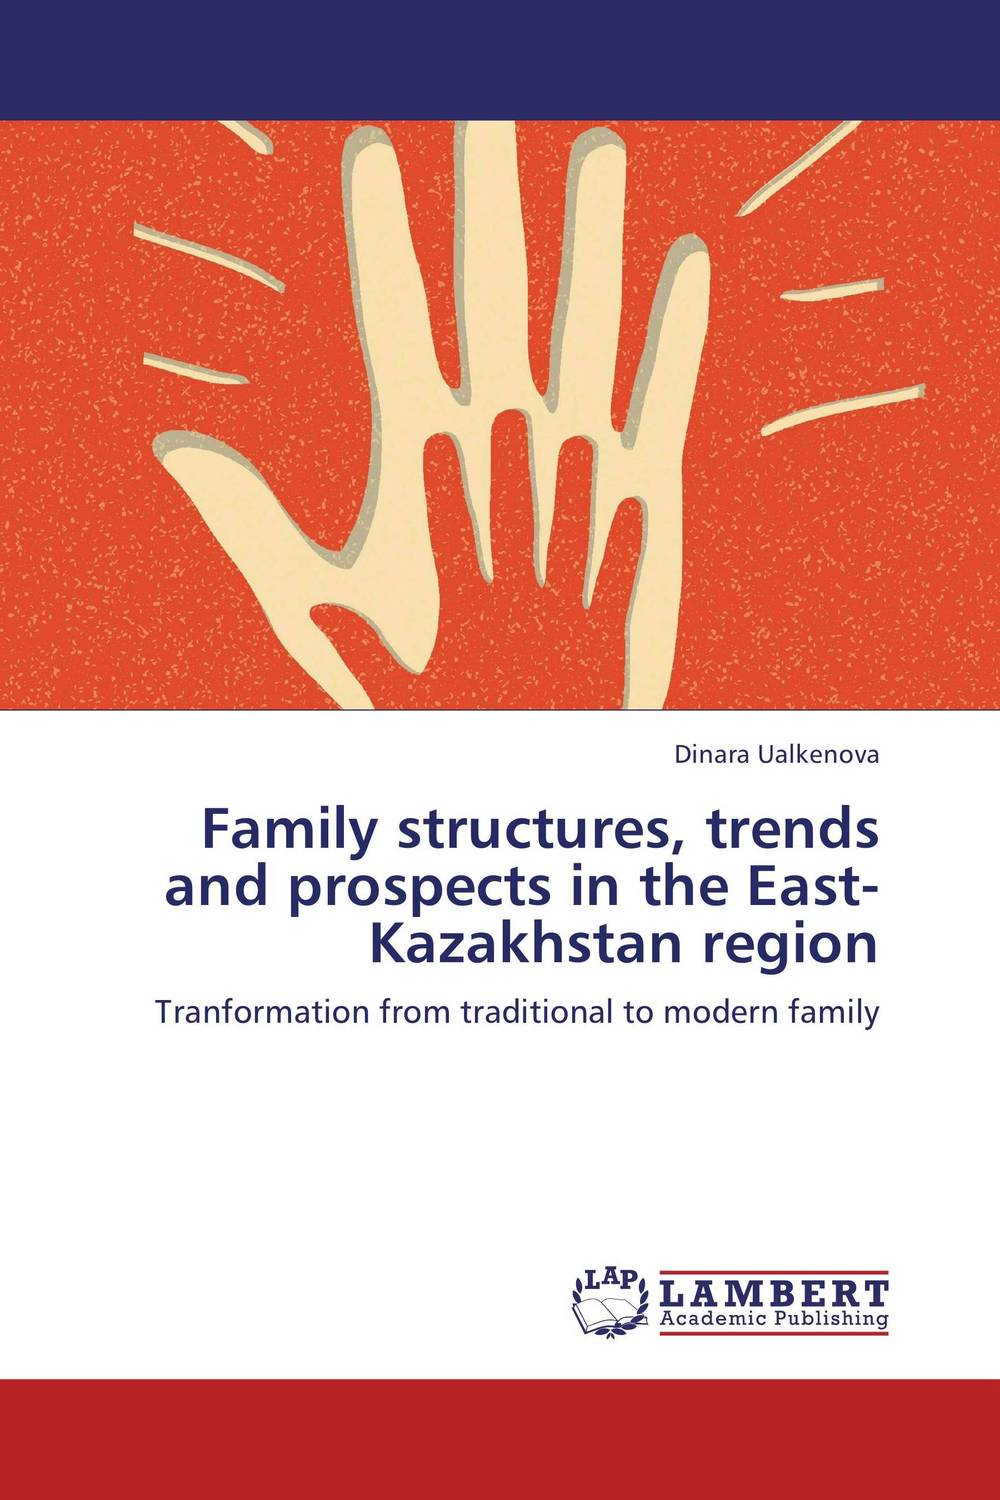 Family structures, trends and prospects in the East-Kazakhstan region